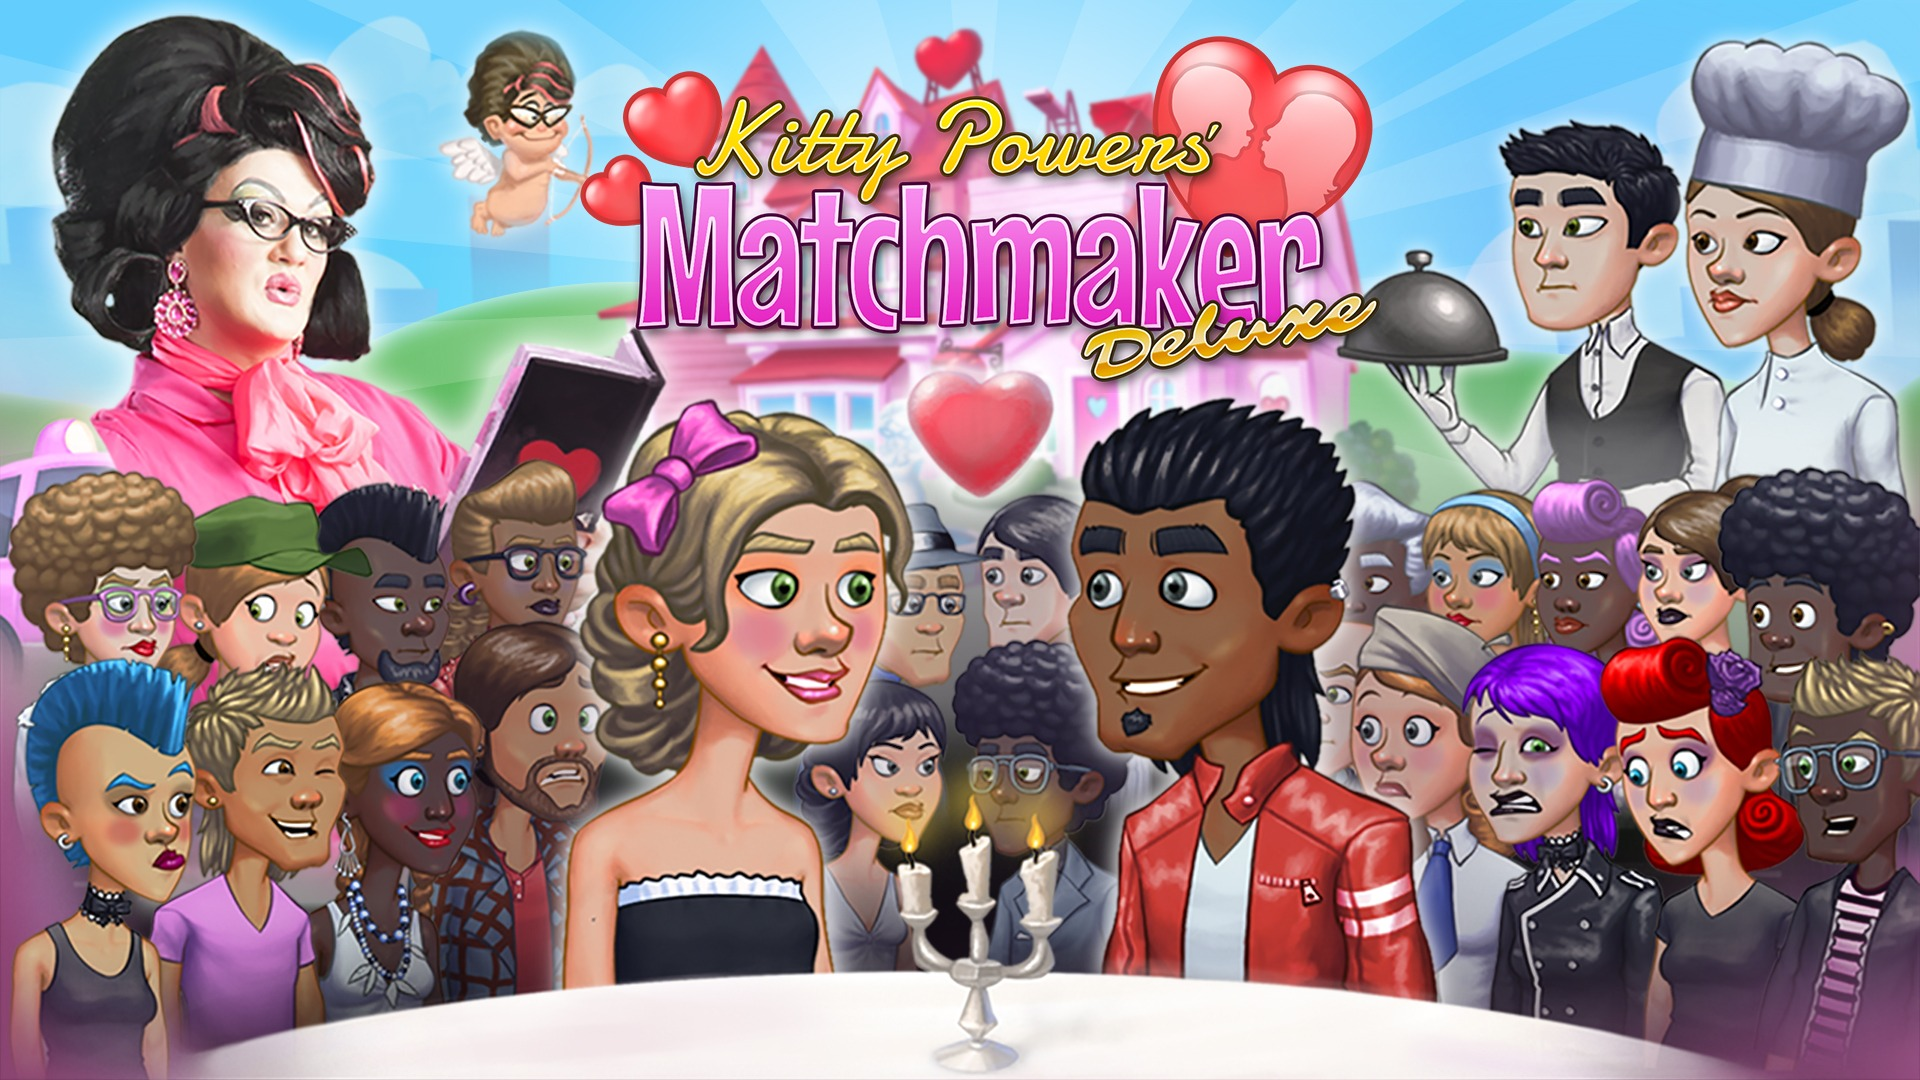 Kitty Power's Matchmaker